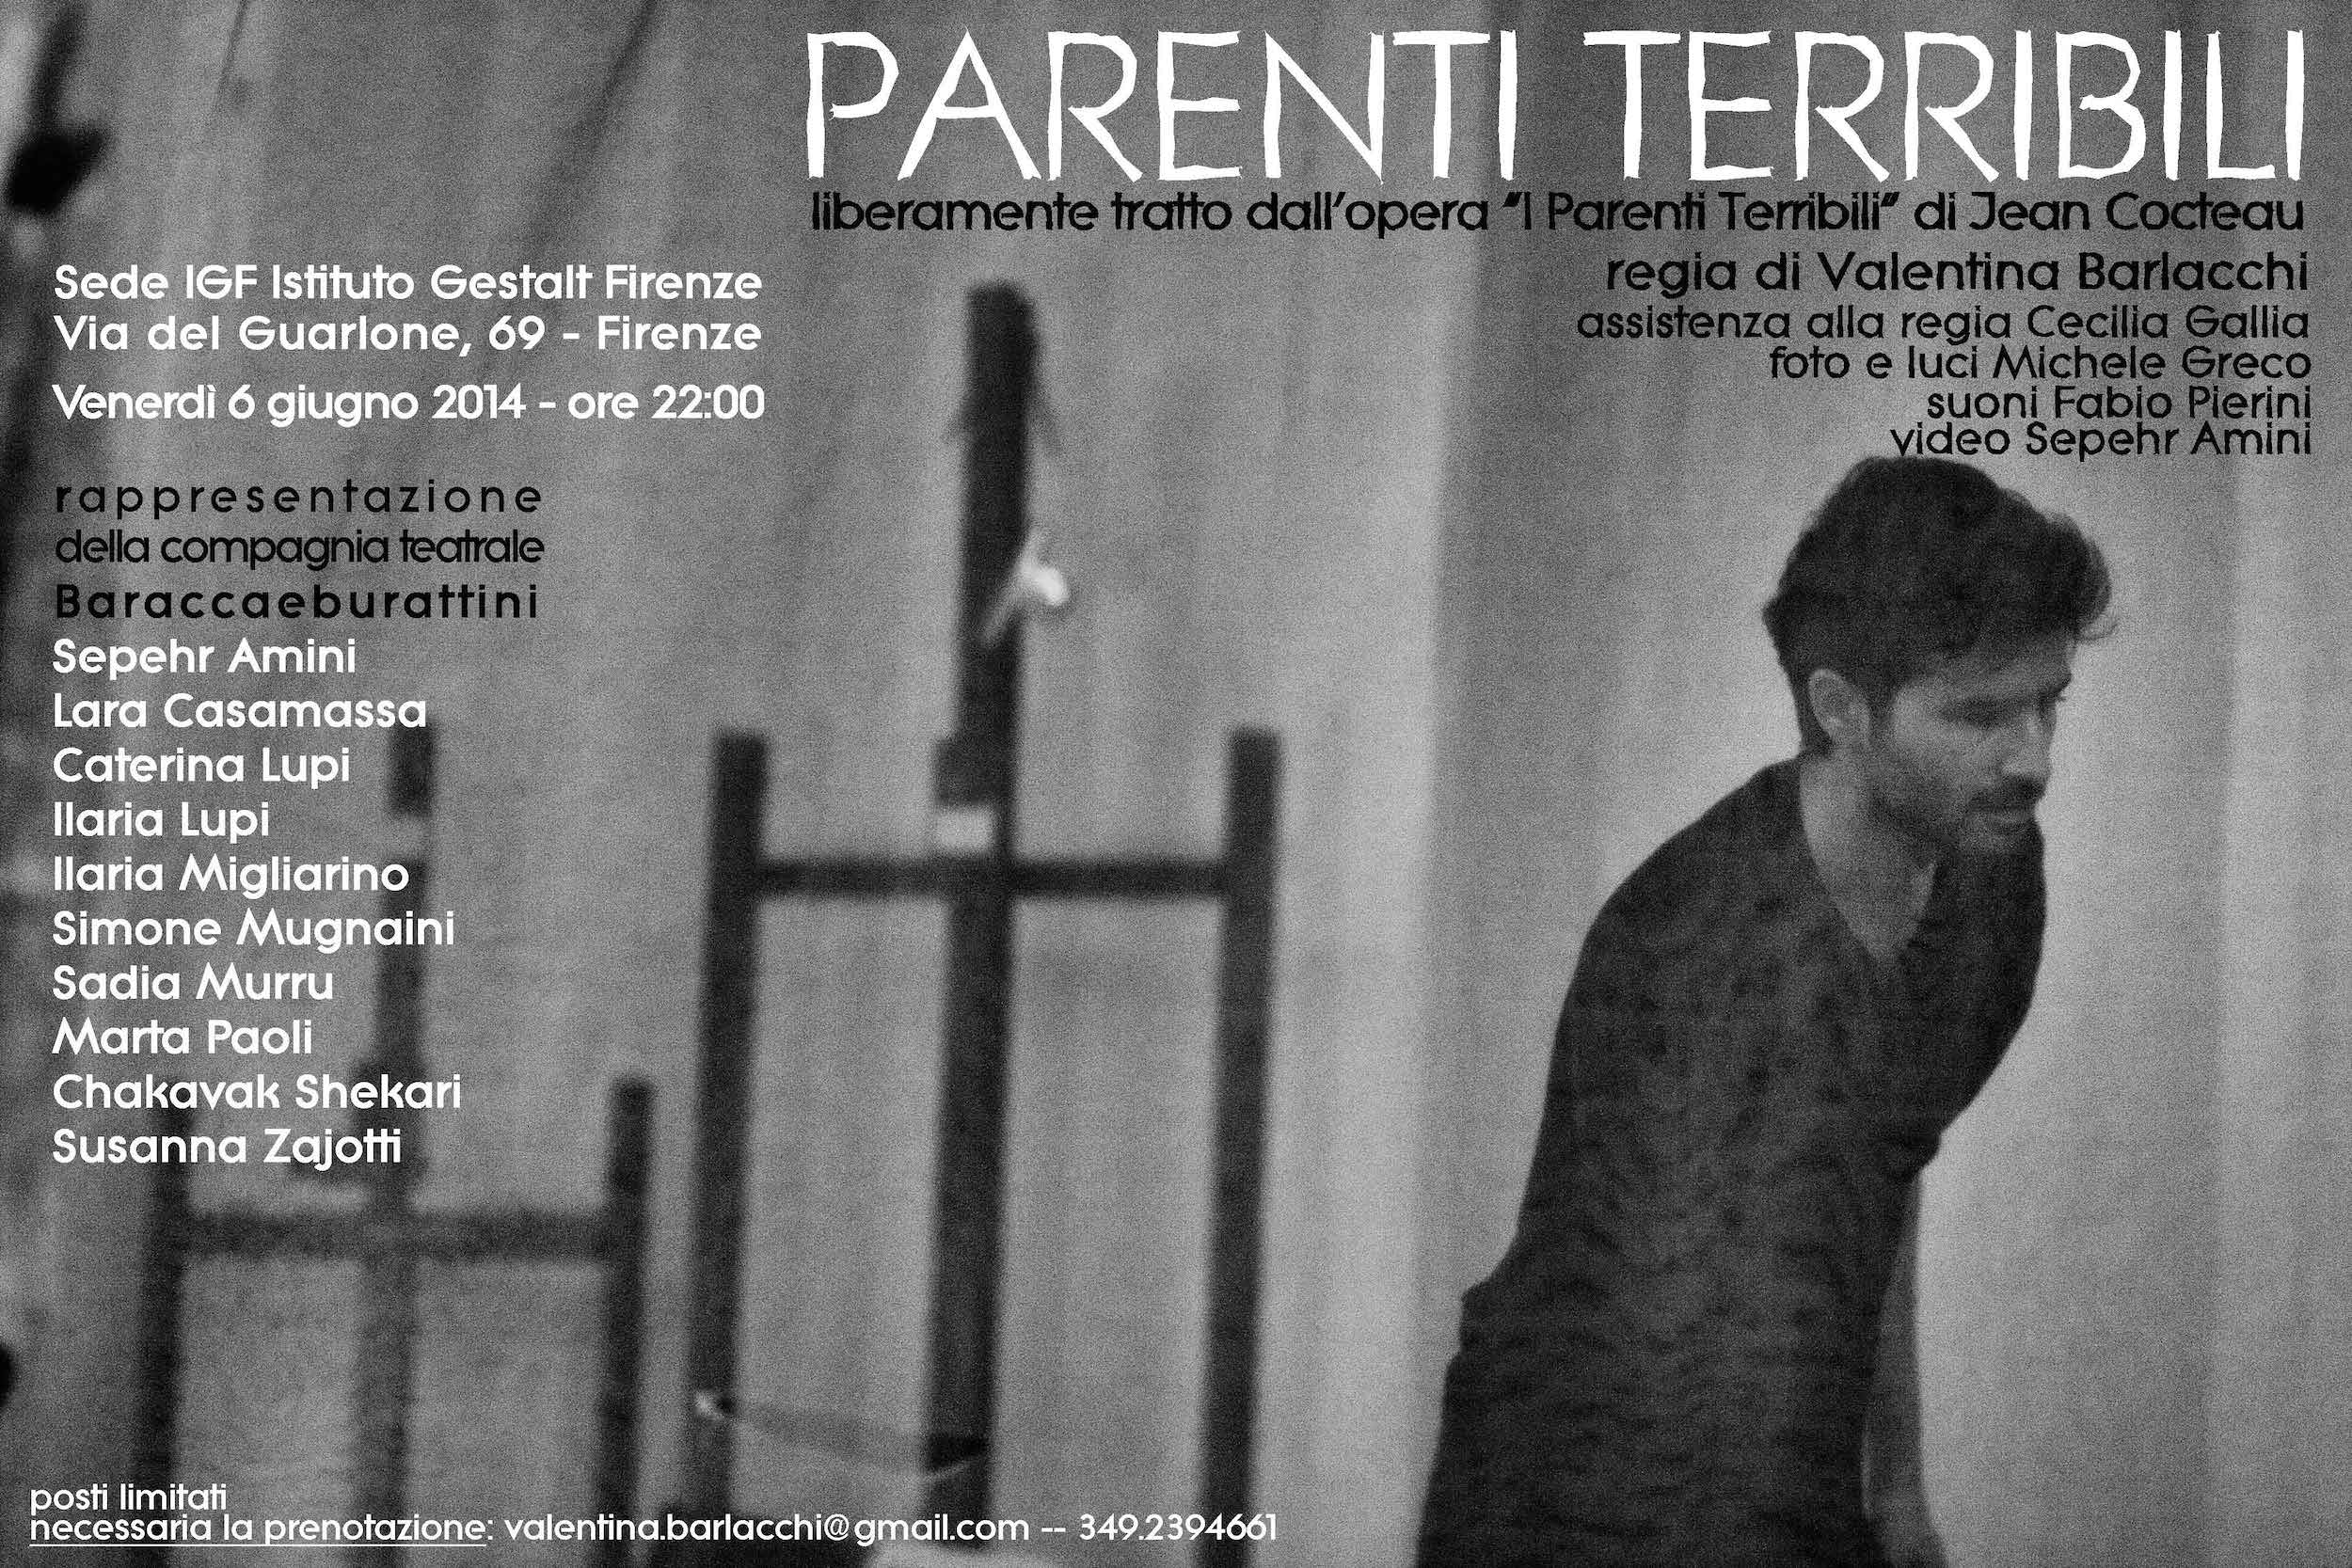 Parenti-Terribili-WEB Red copia